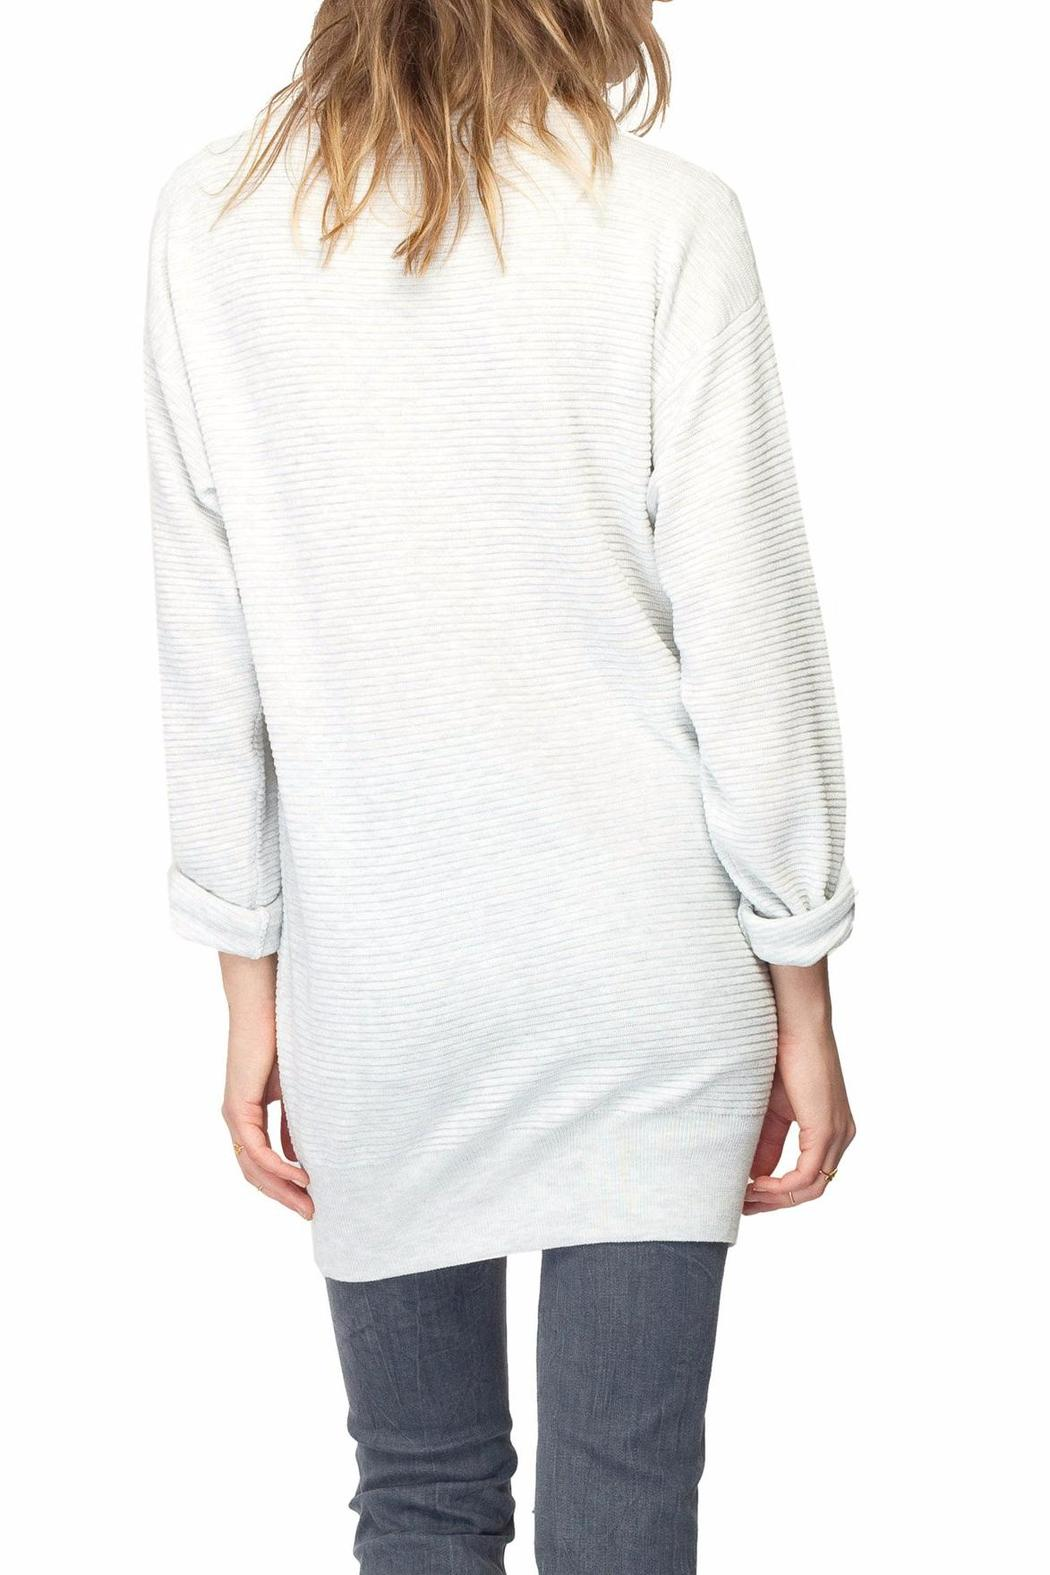 Gentle Fawn Turtleneck Sweater from Canada by Moxxi — Shoptiques